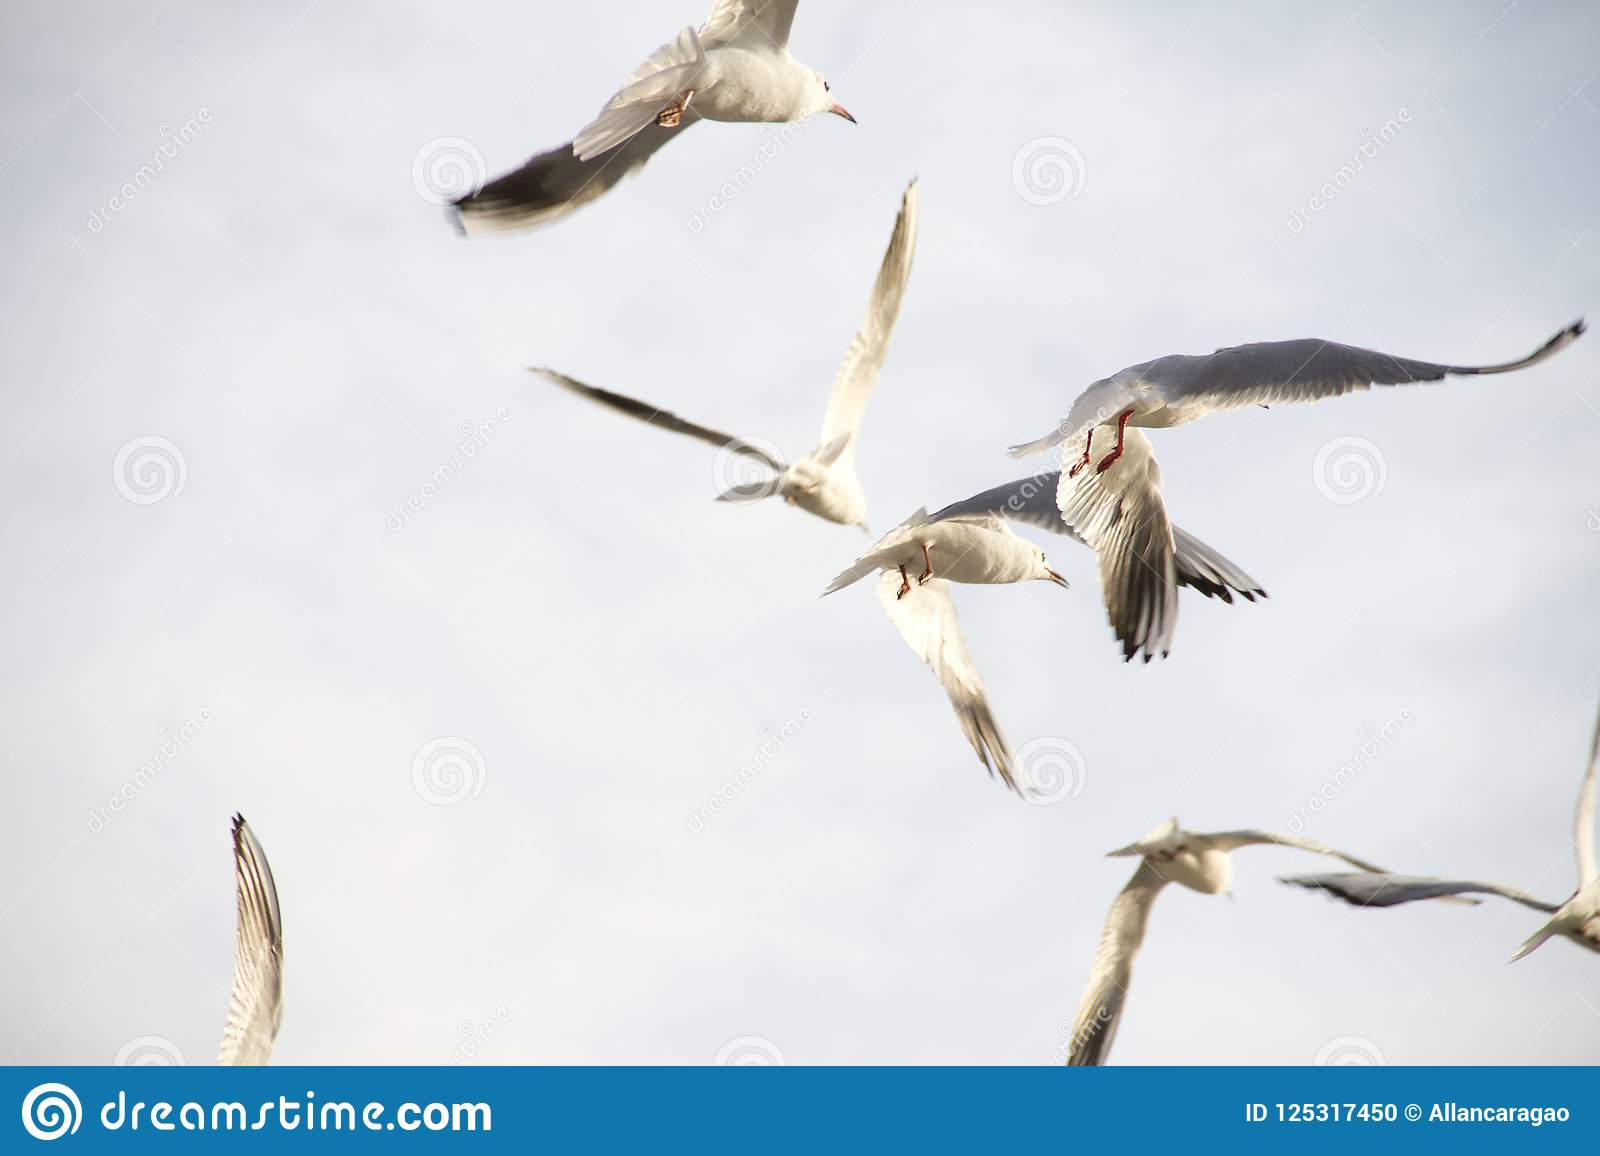 bird flying with free